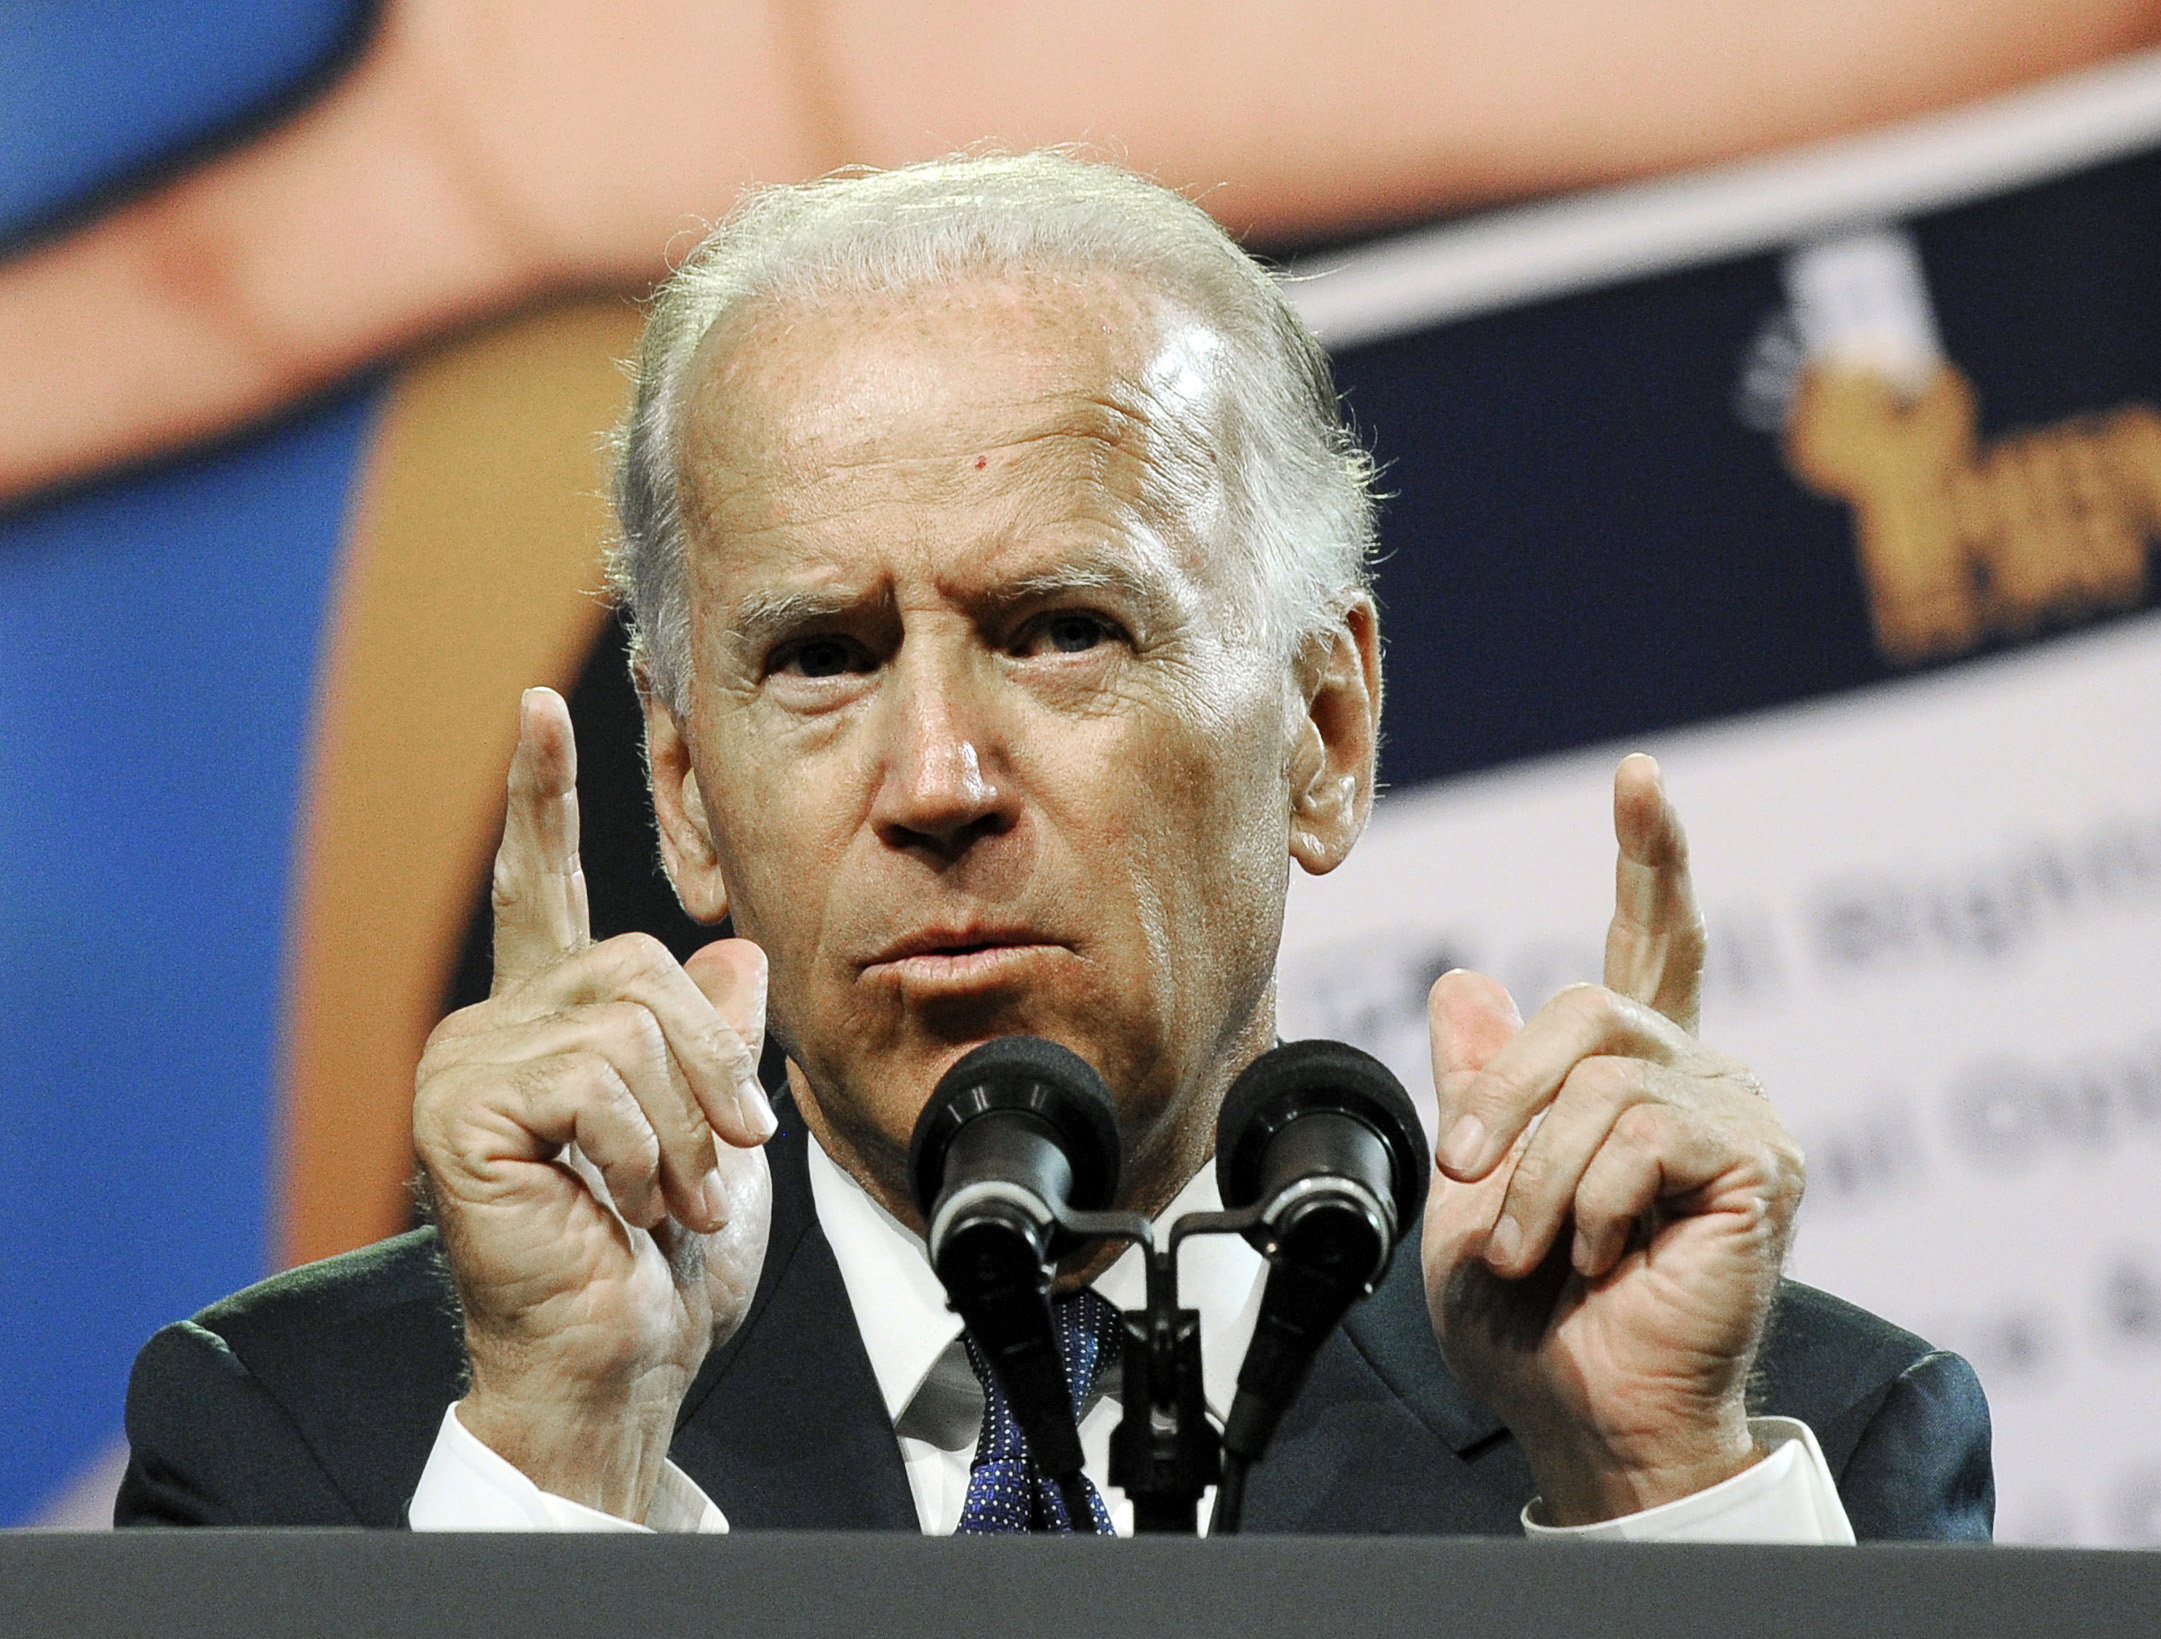 Vice President Joe Biden addresses the NAACP annual convention in Houston in July. (Pat Sullivan/AP)